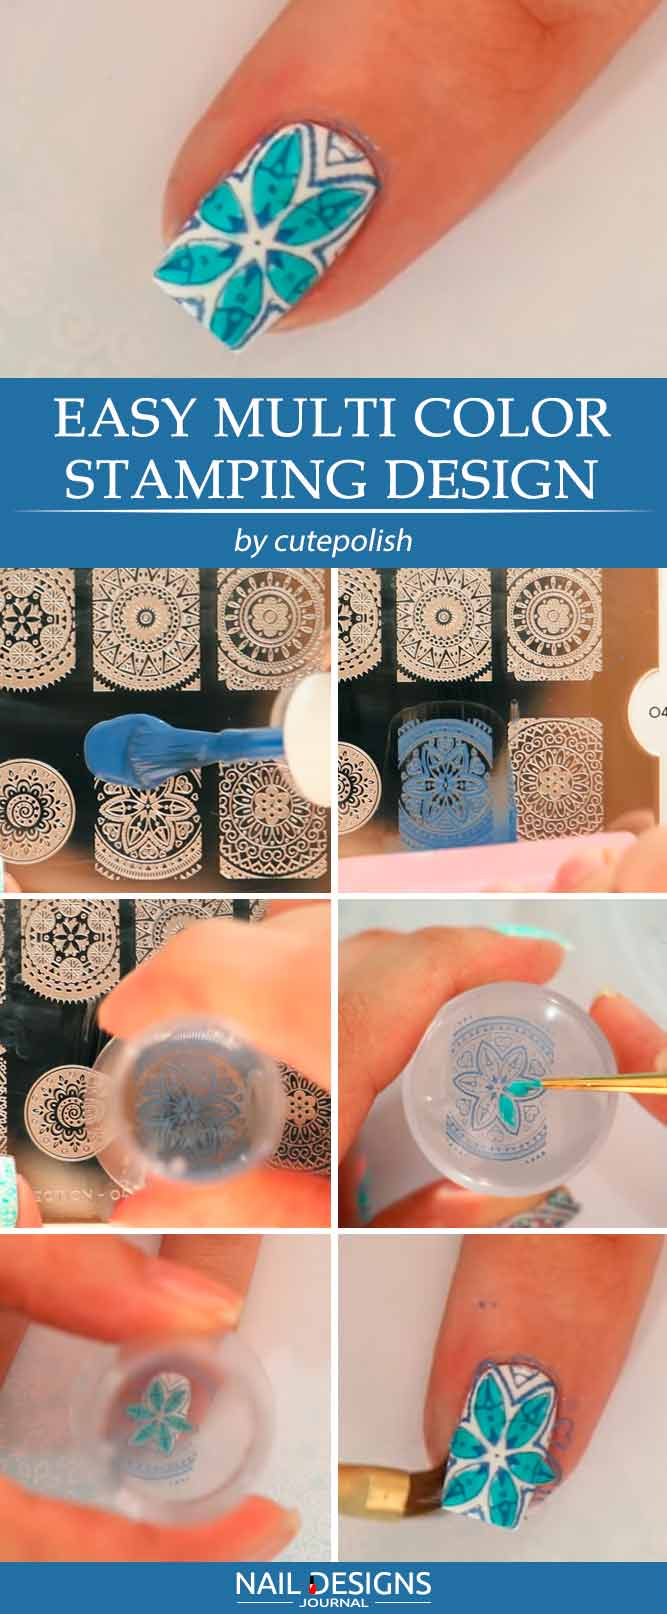 Easy Multi Color Stamping Design